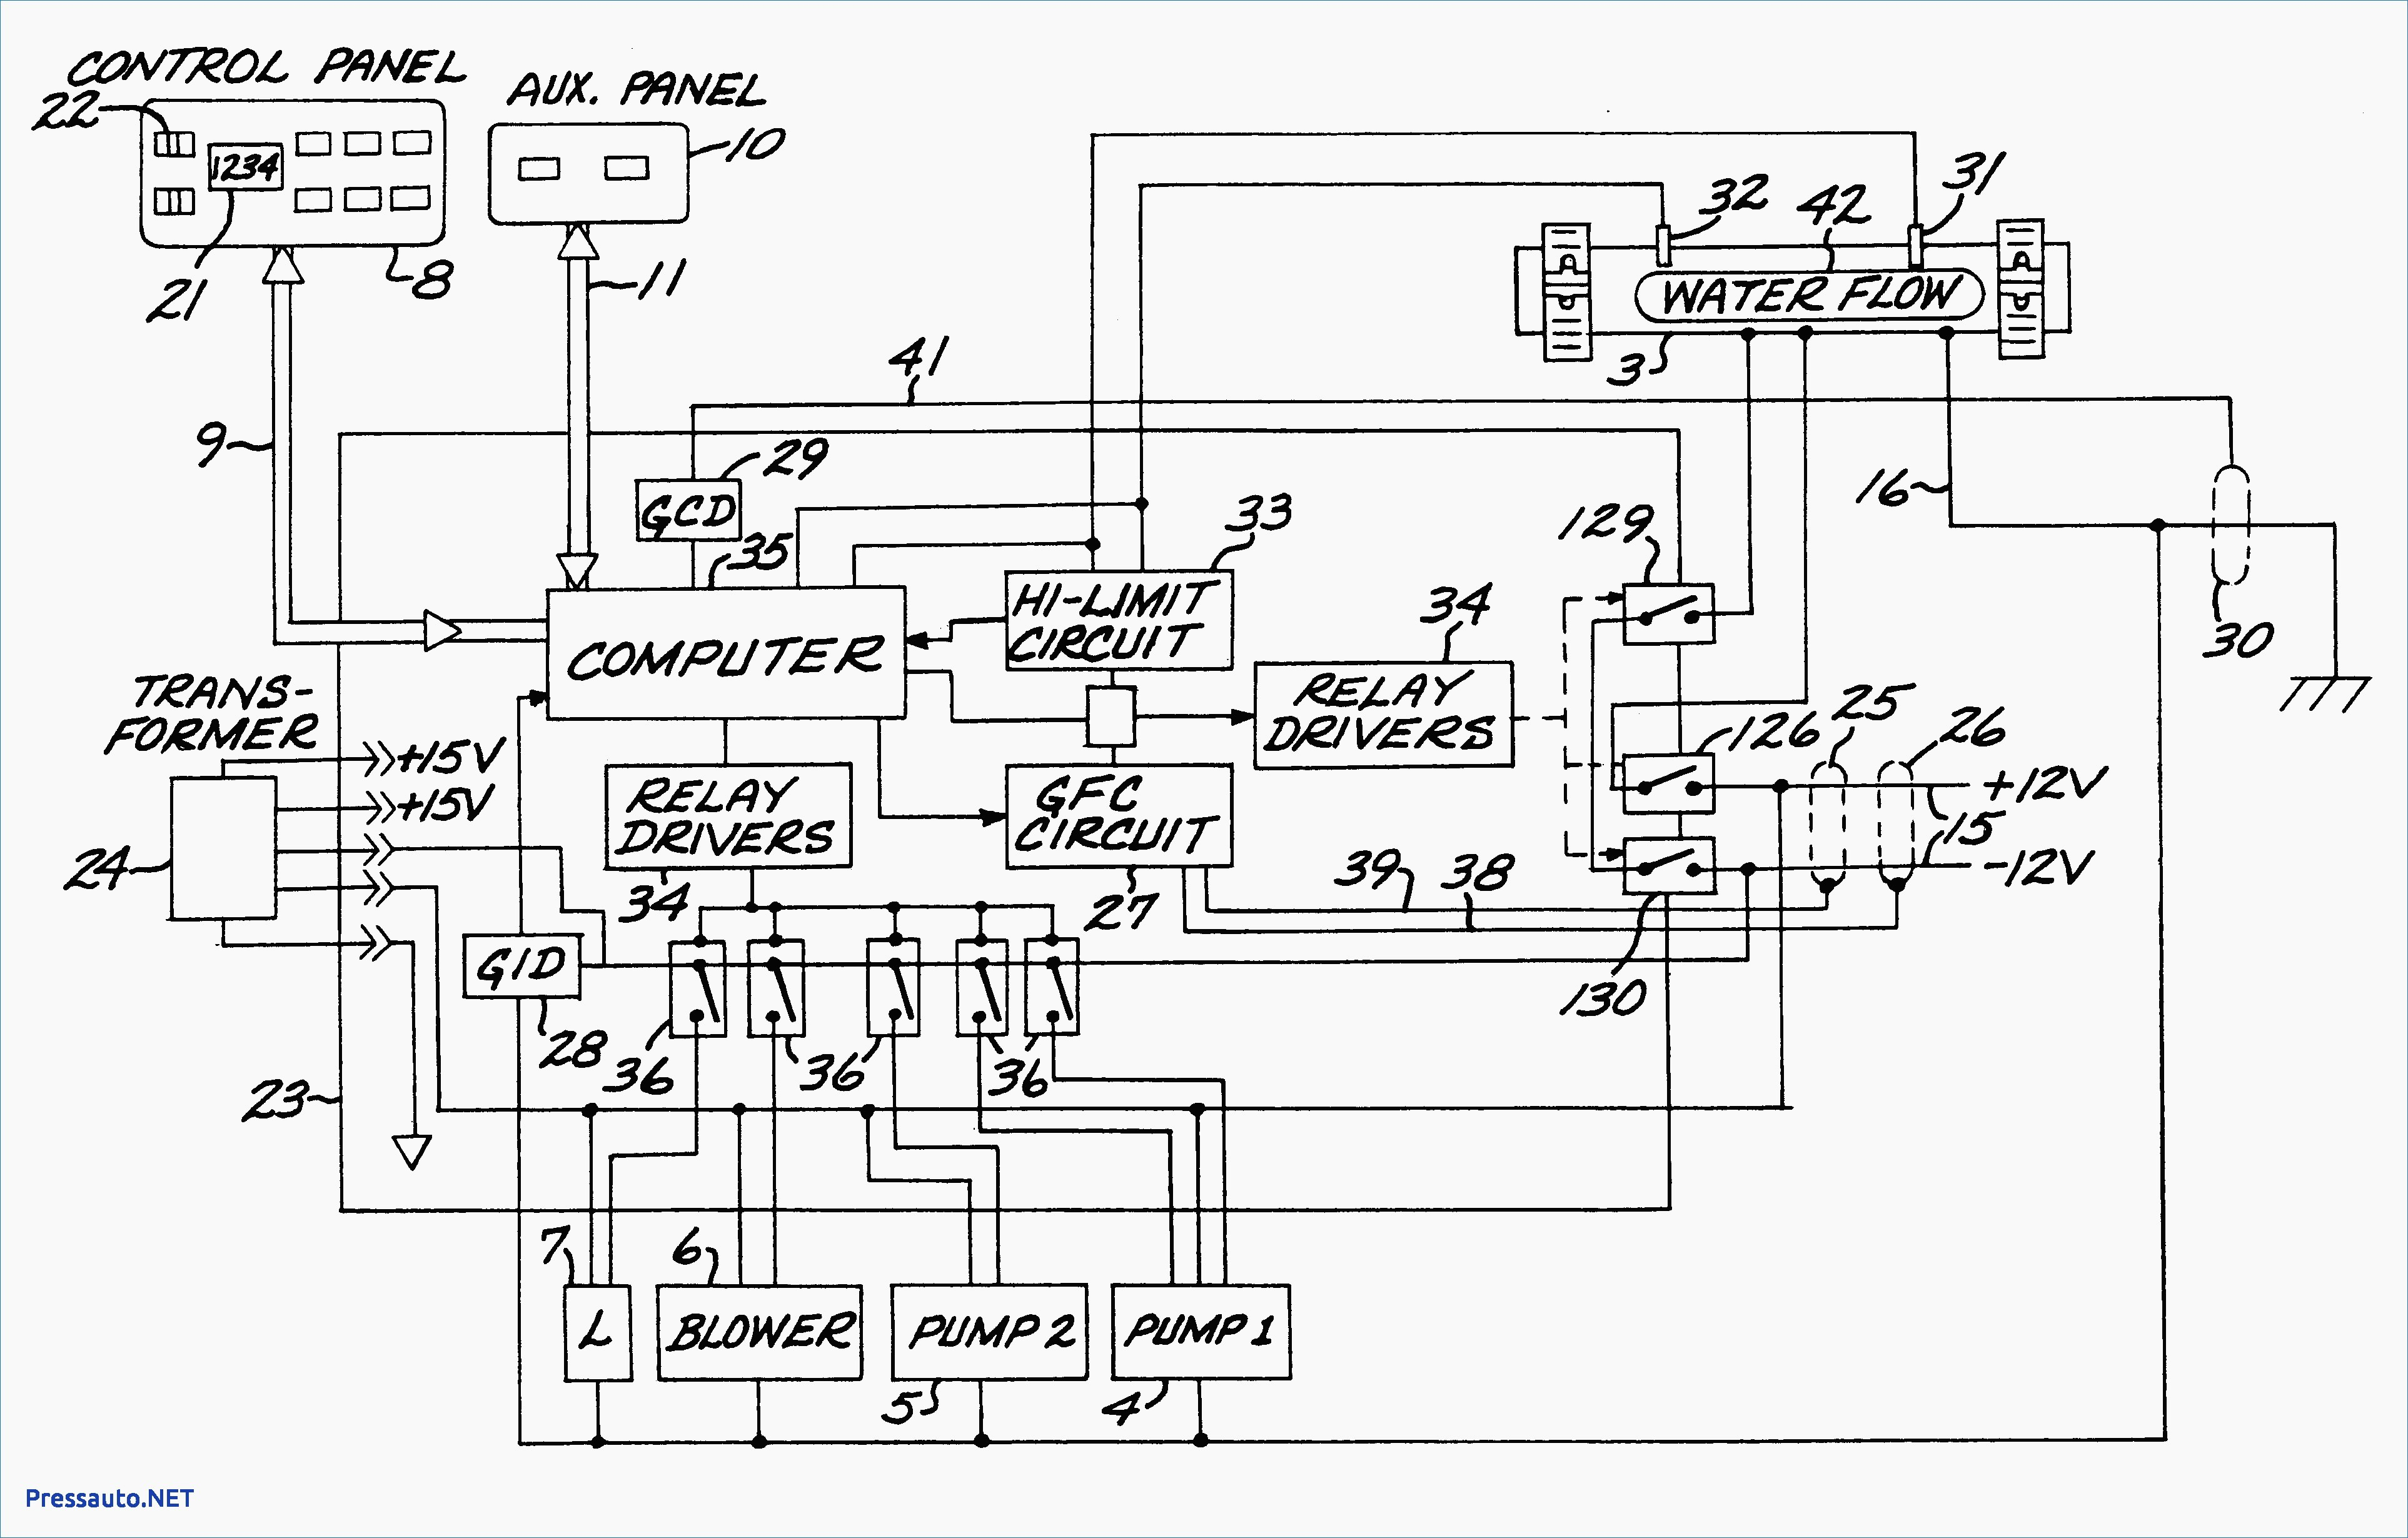 Spa Wiring Diagram Schematic - Library Of Wiring Diagrams •